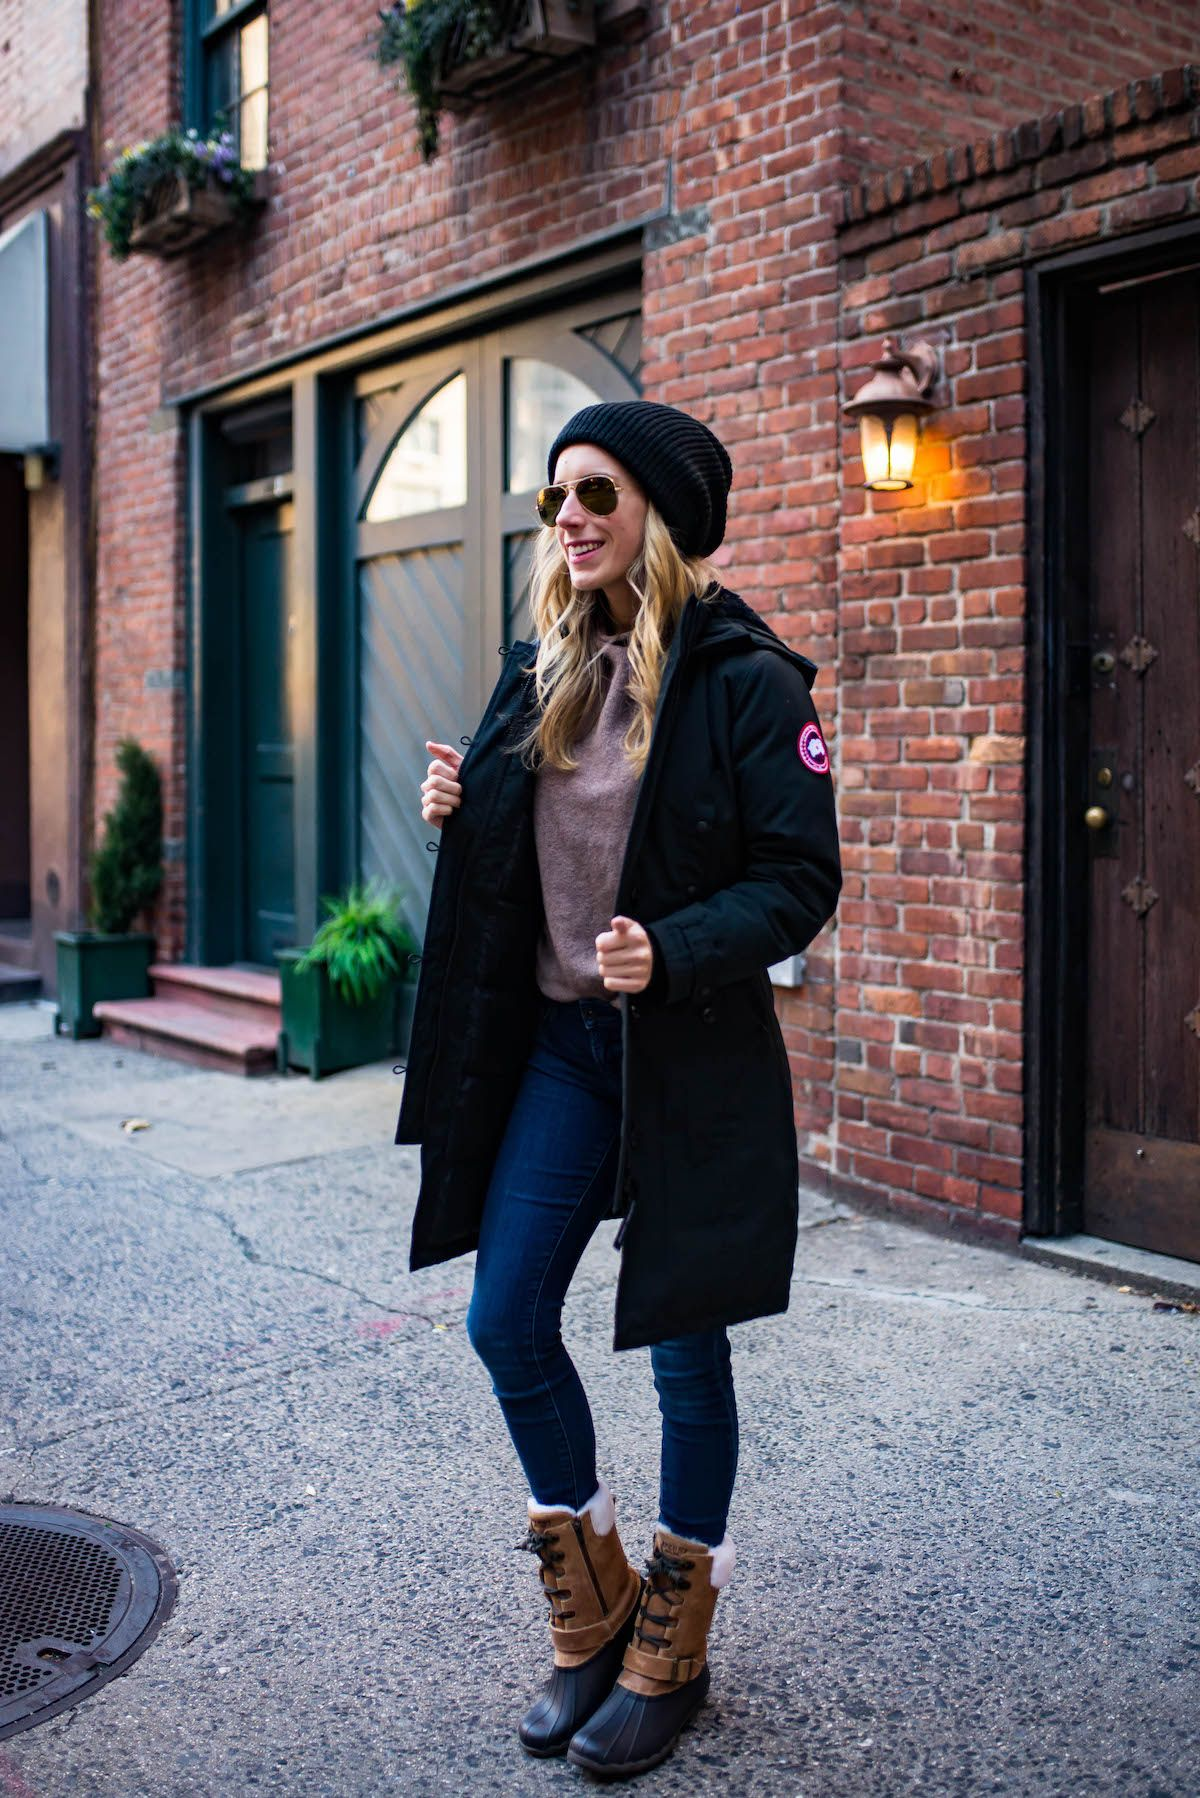 Pin on fall and winter fashion inspo